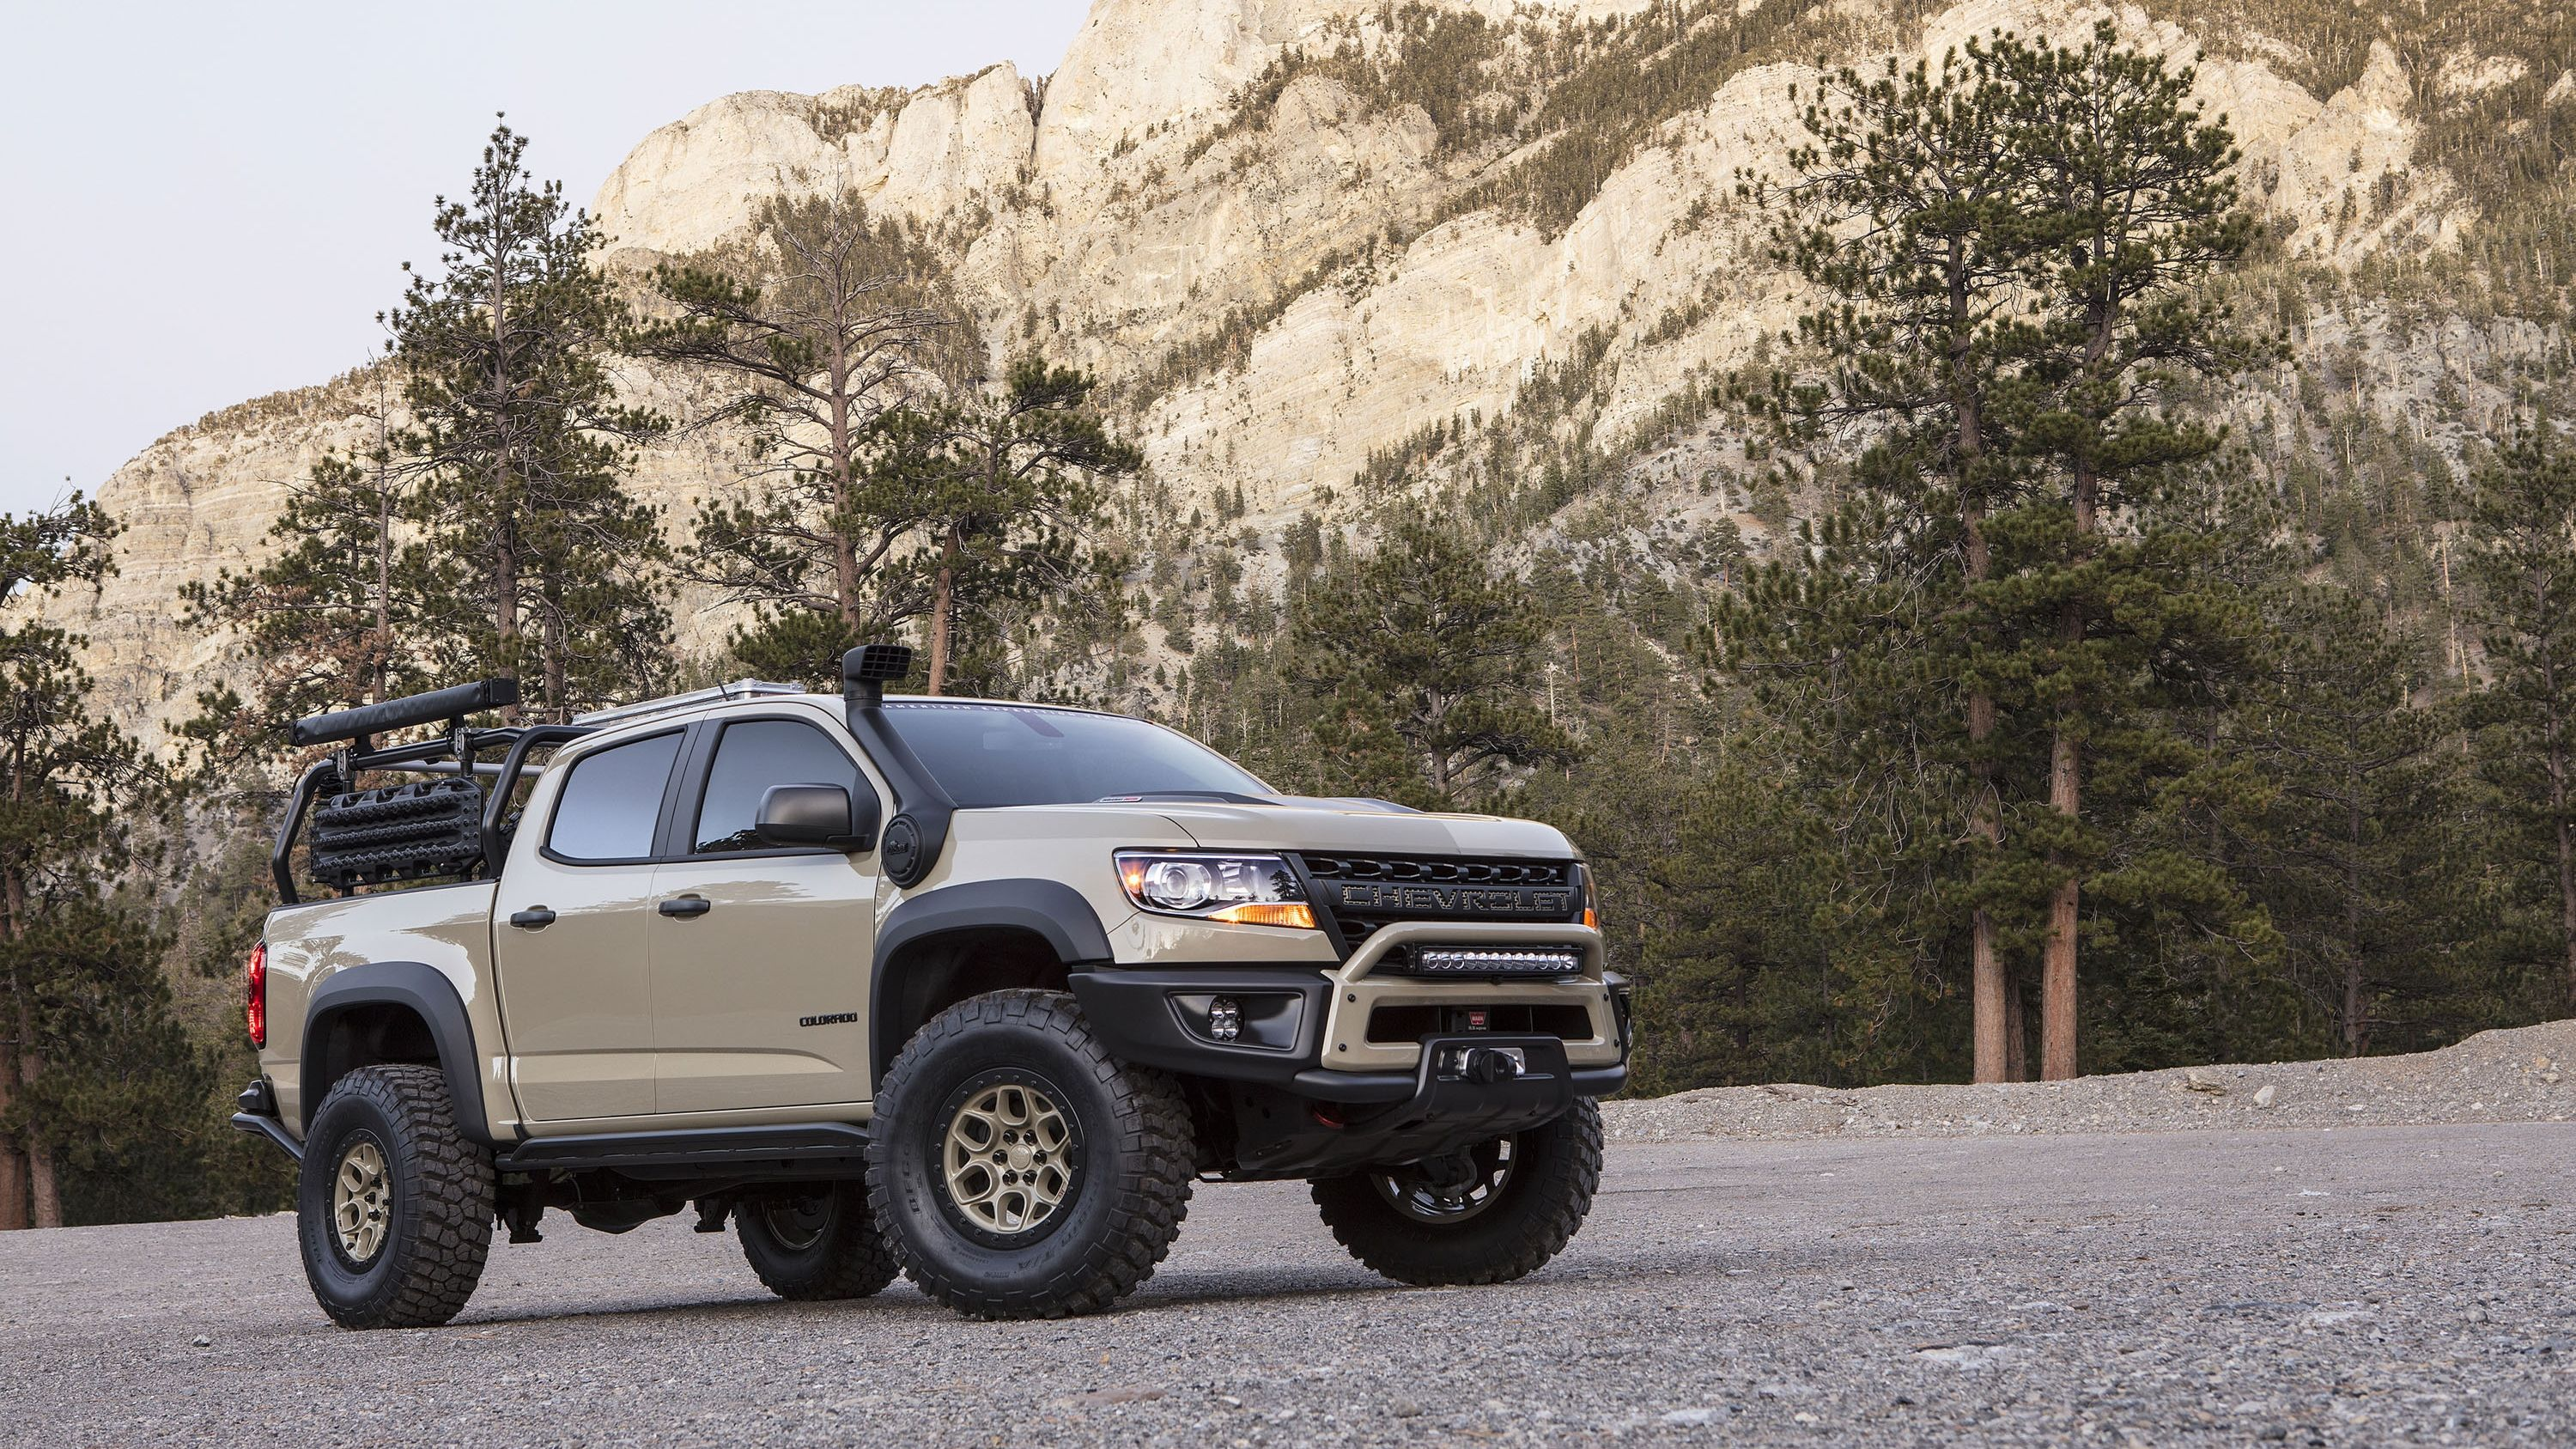 Chevy Is Pushing The Colorado Zr2 Aev Concept Into Production Will Probably Call It The Colorado Bison Chevrolet